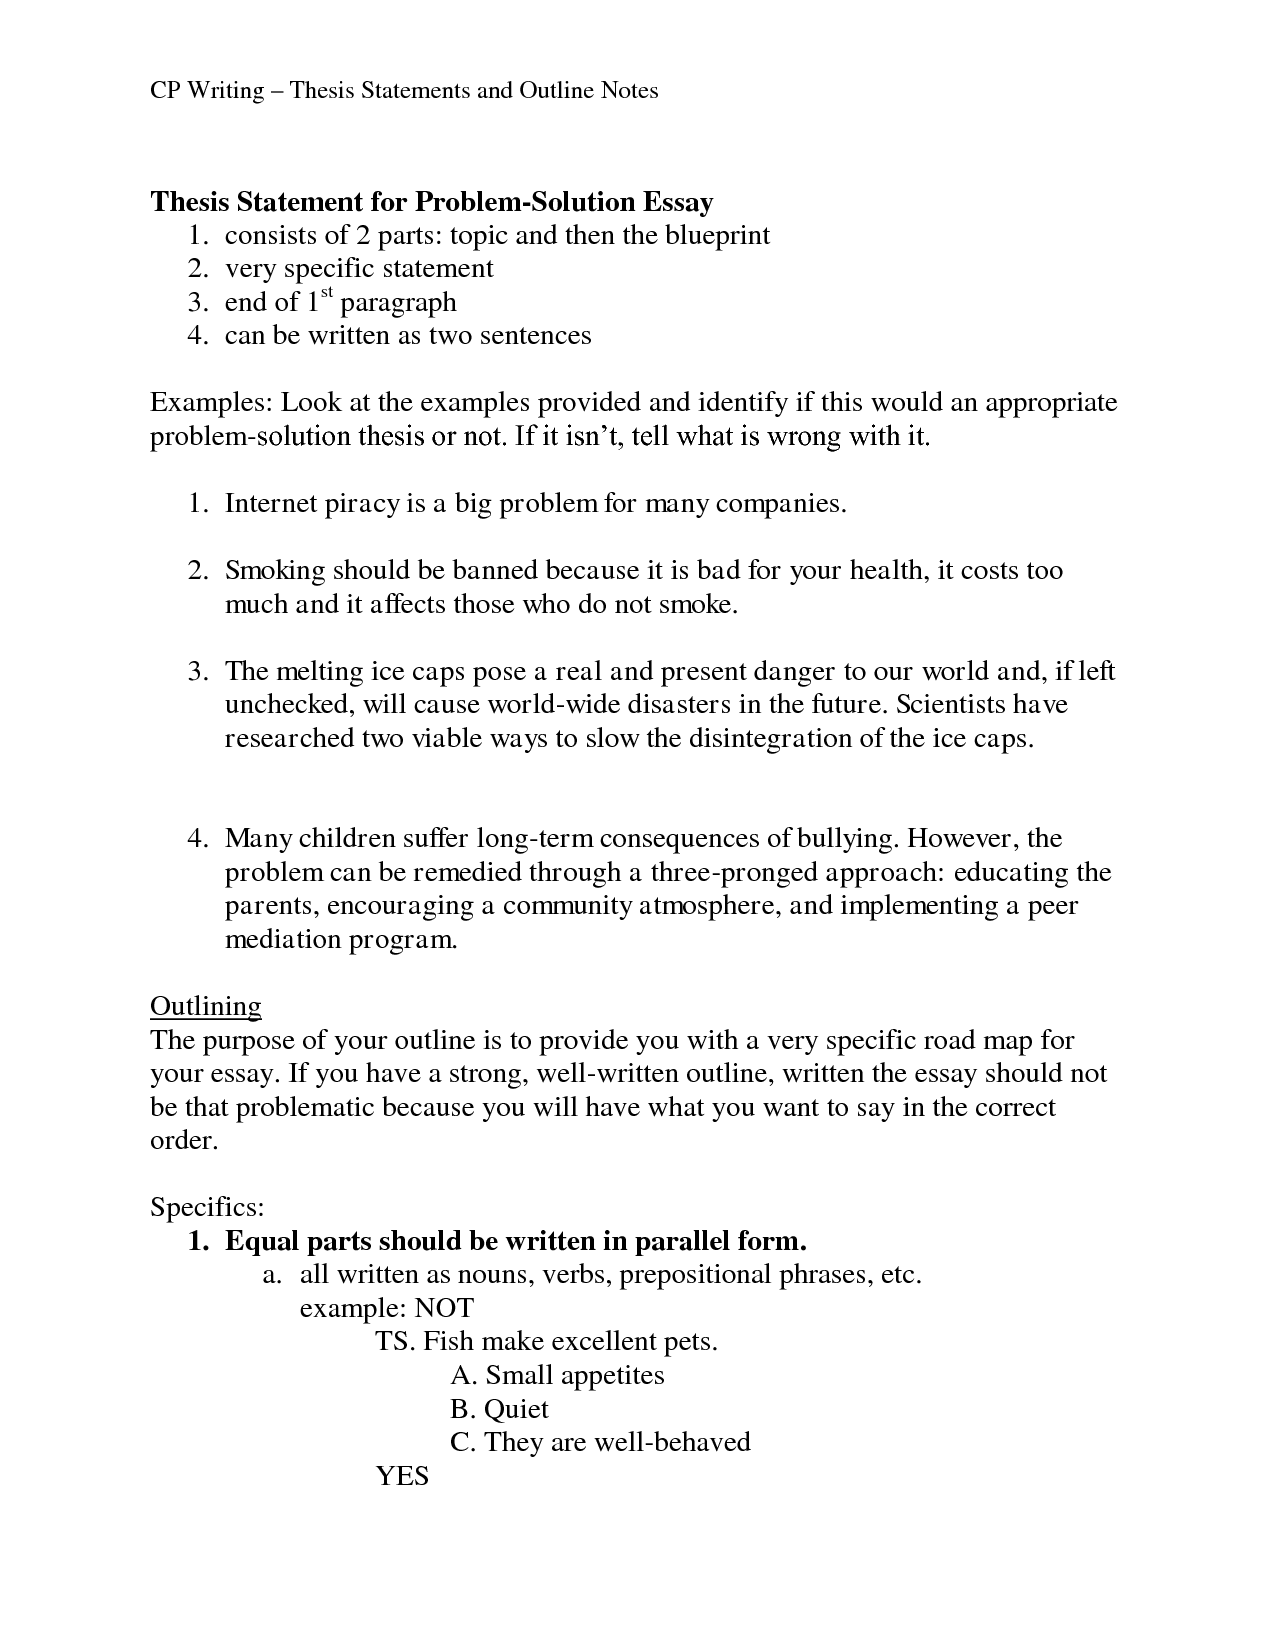 018 Research Paper Examples Of Thesis Statements For Papers Phenomenal Argumentative Statement Pdf Example Career Full